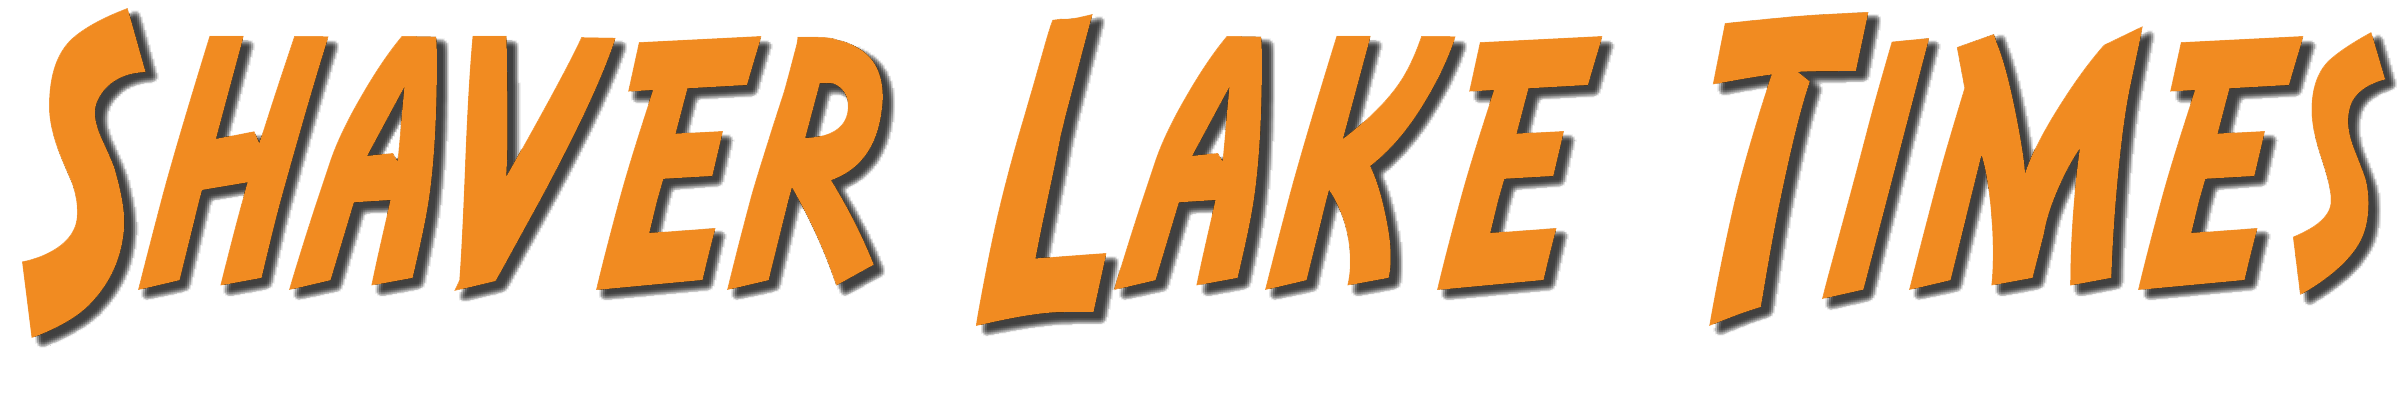 shaver_lake_times_web_header_blank